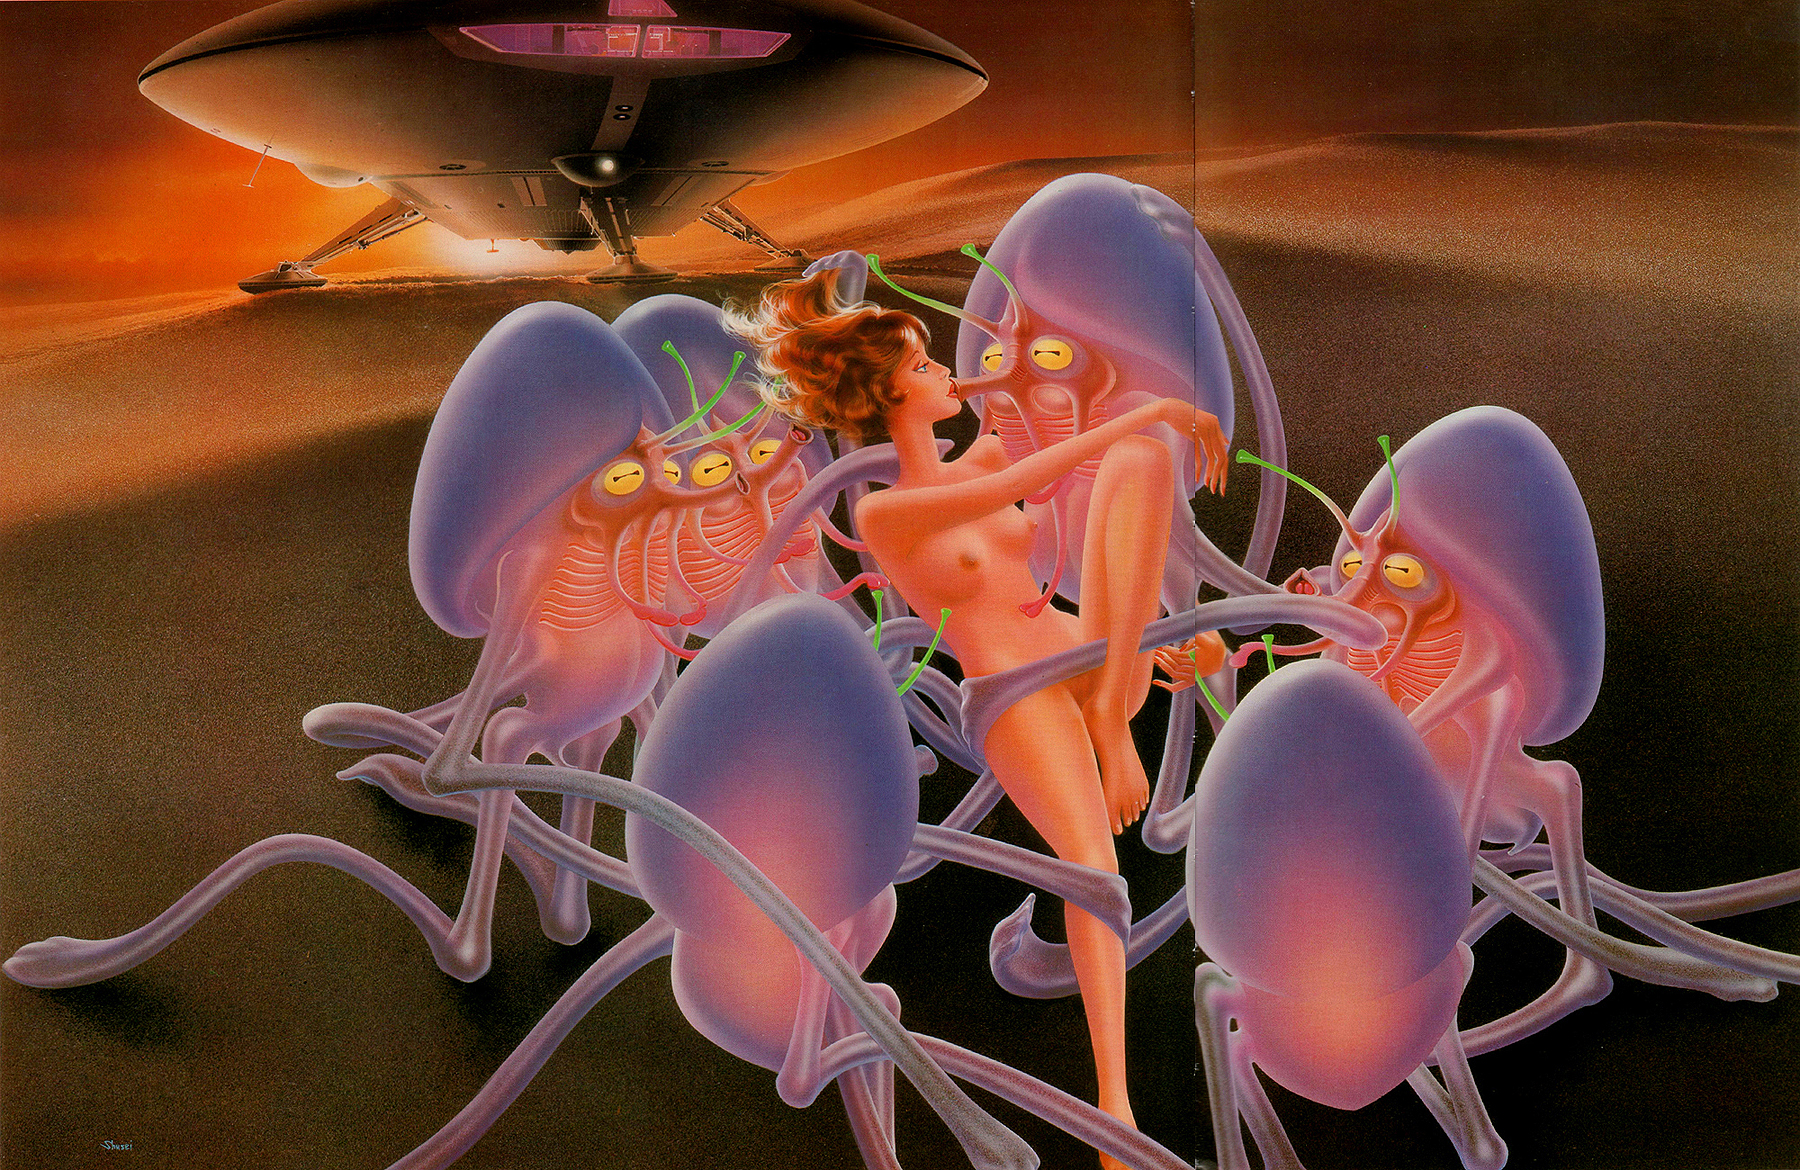 Sci-fi illustrations by Shusei Nagaoka ~ Pink Tentacle